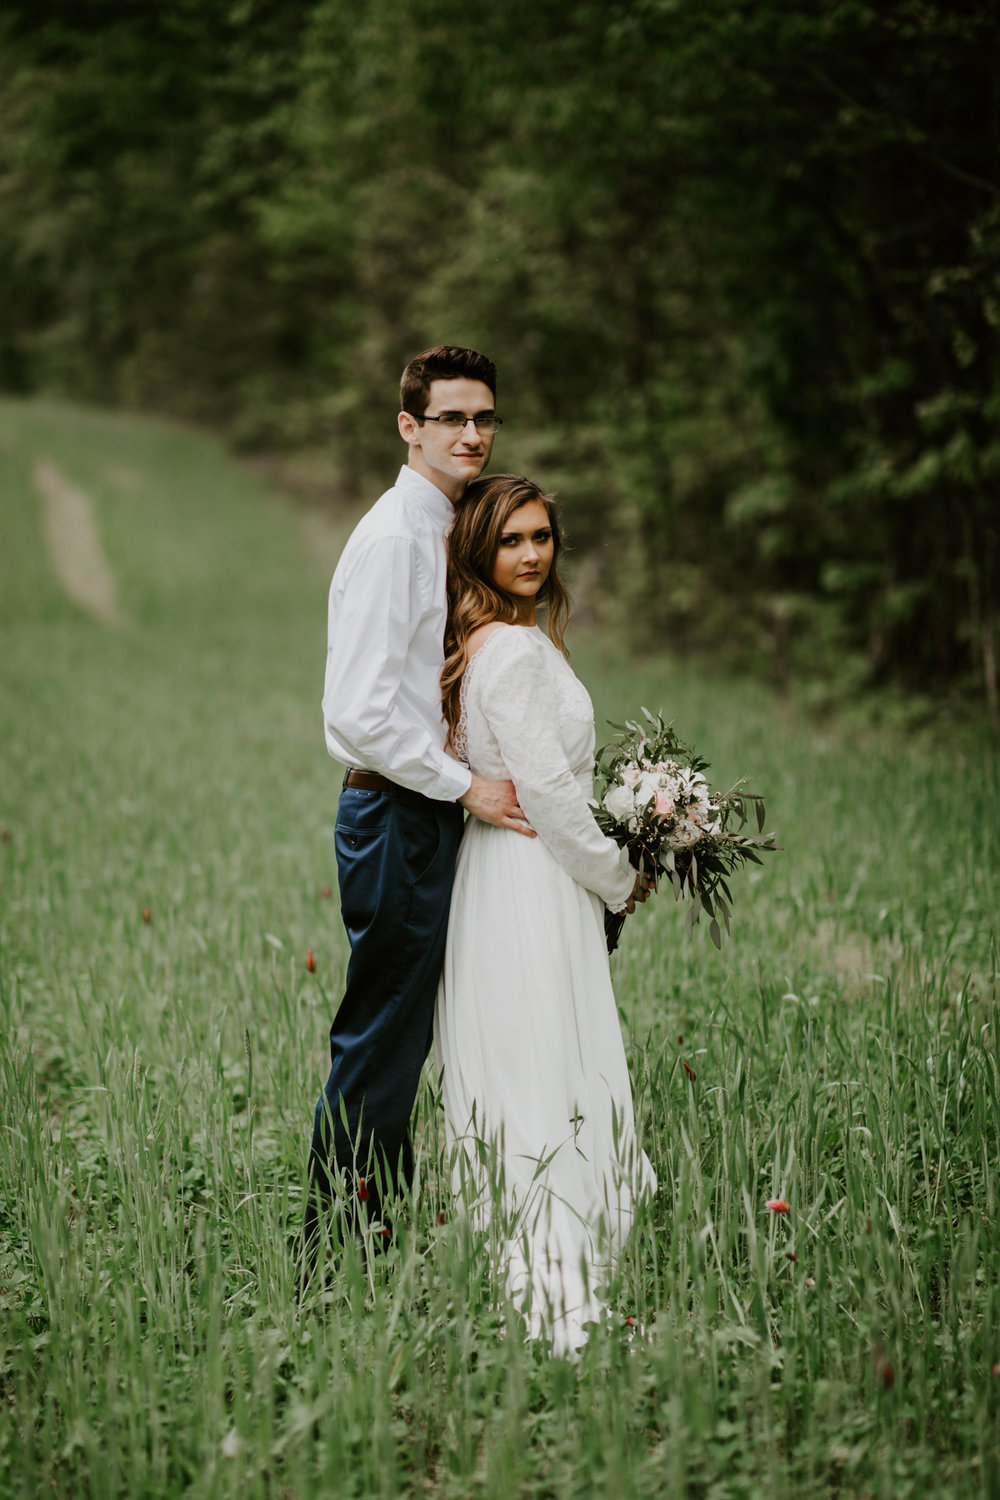 Lacey-Joe-Chattanooga-Nashville-Tennessee-Wedding-Elopement-Photographer-190.jpg